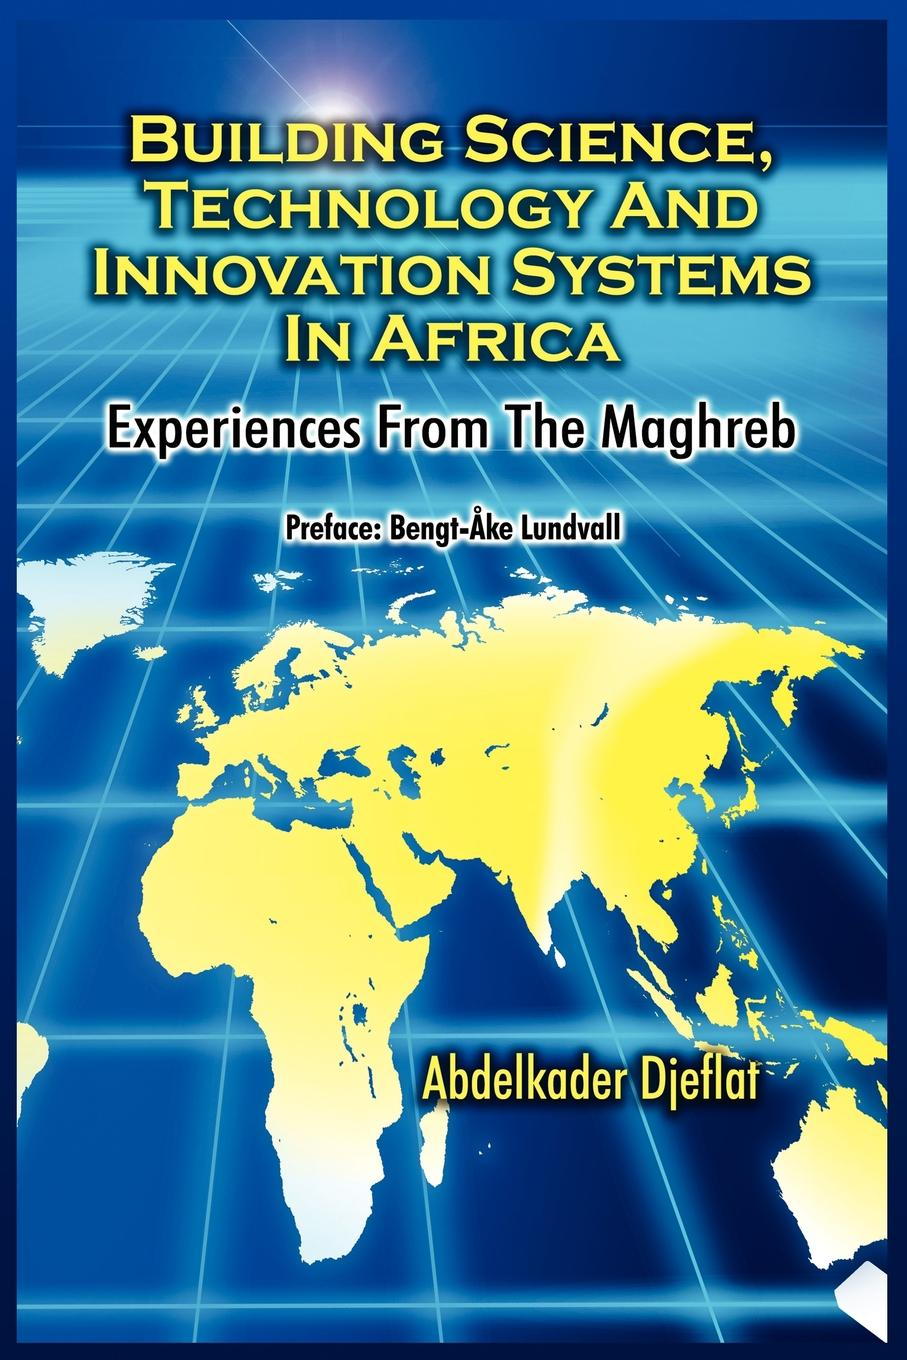 Abdelkader Djeflat Building Science, Technology and Innovation Systems in Africa. Experiences from the Maghreb larry keeley ten types of innovation the discipline of building breakthroughs